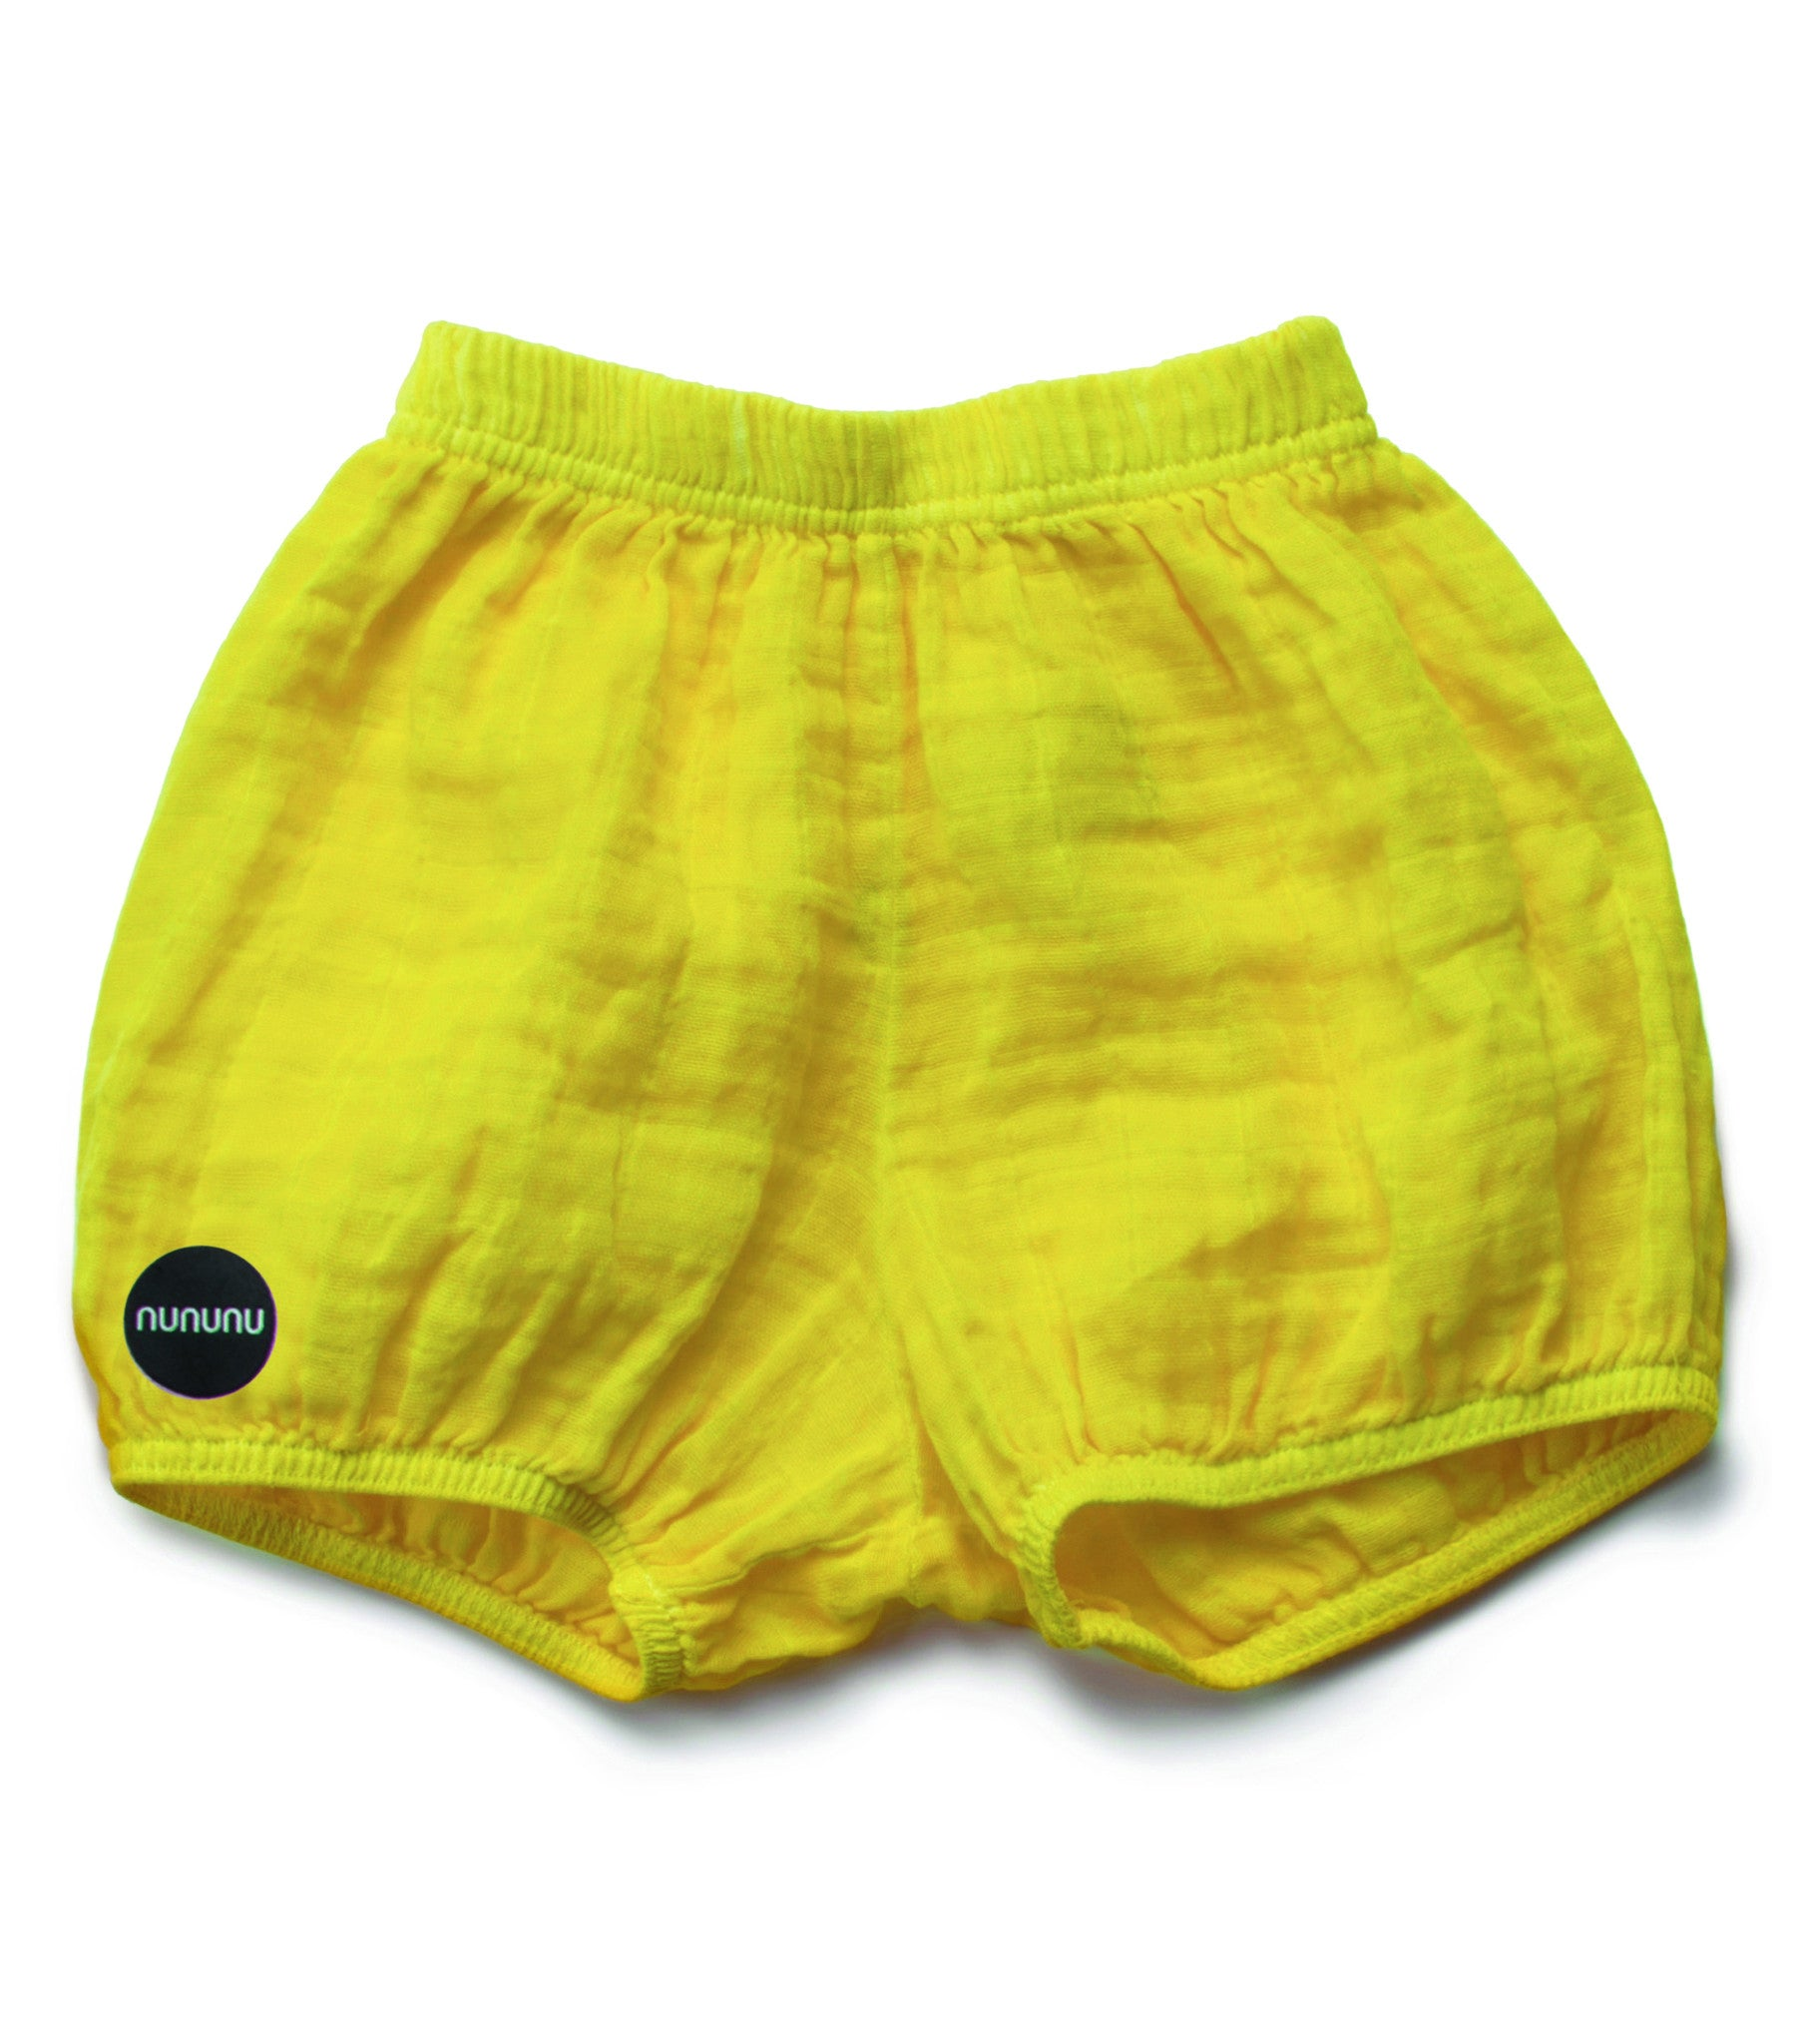 NUNUNU Dusty Yellow Muslin Yoga Shorts - Ladida